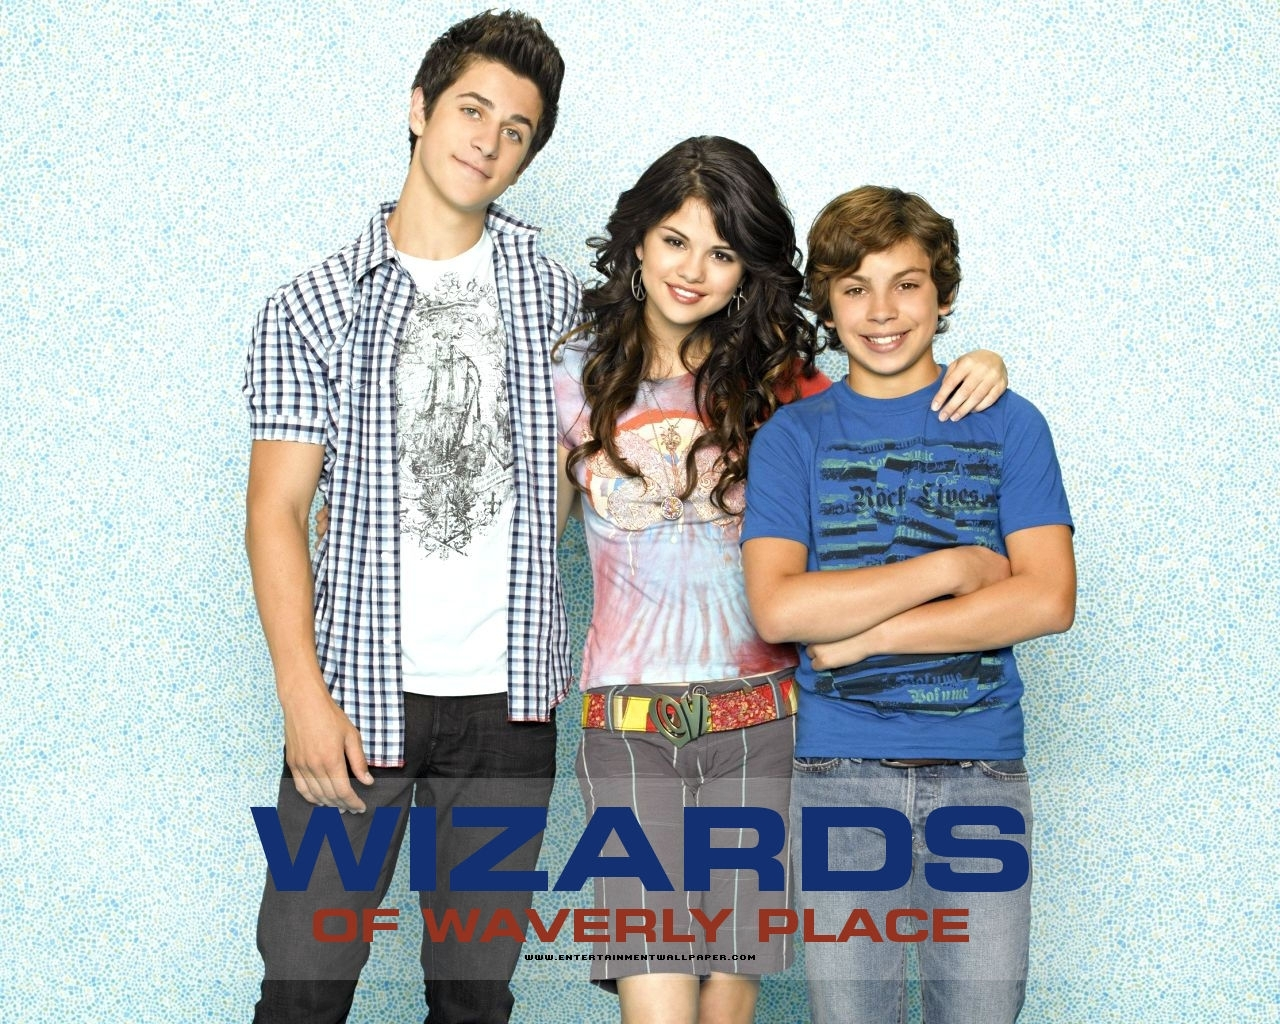 wizards of waverly place image links   tv tropes